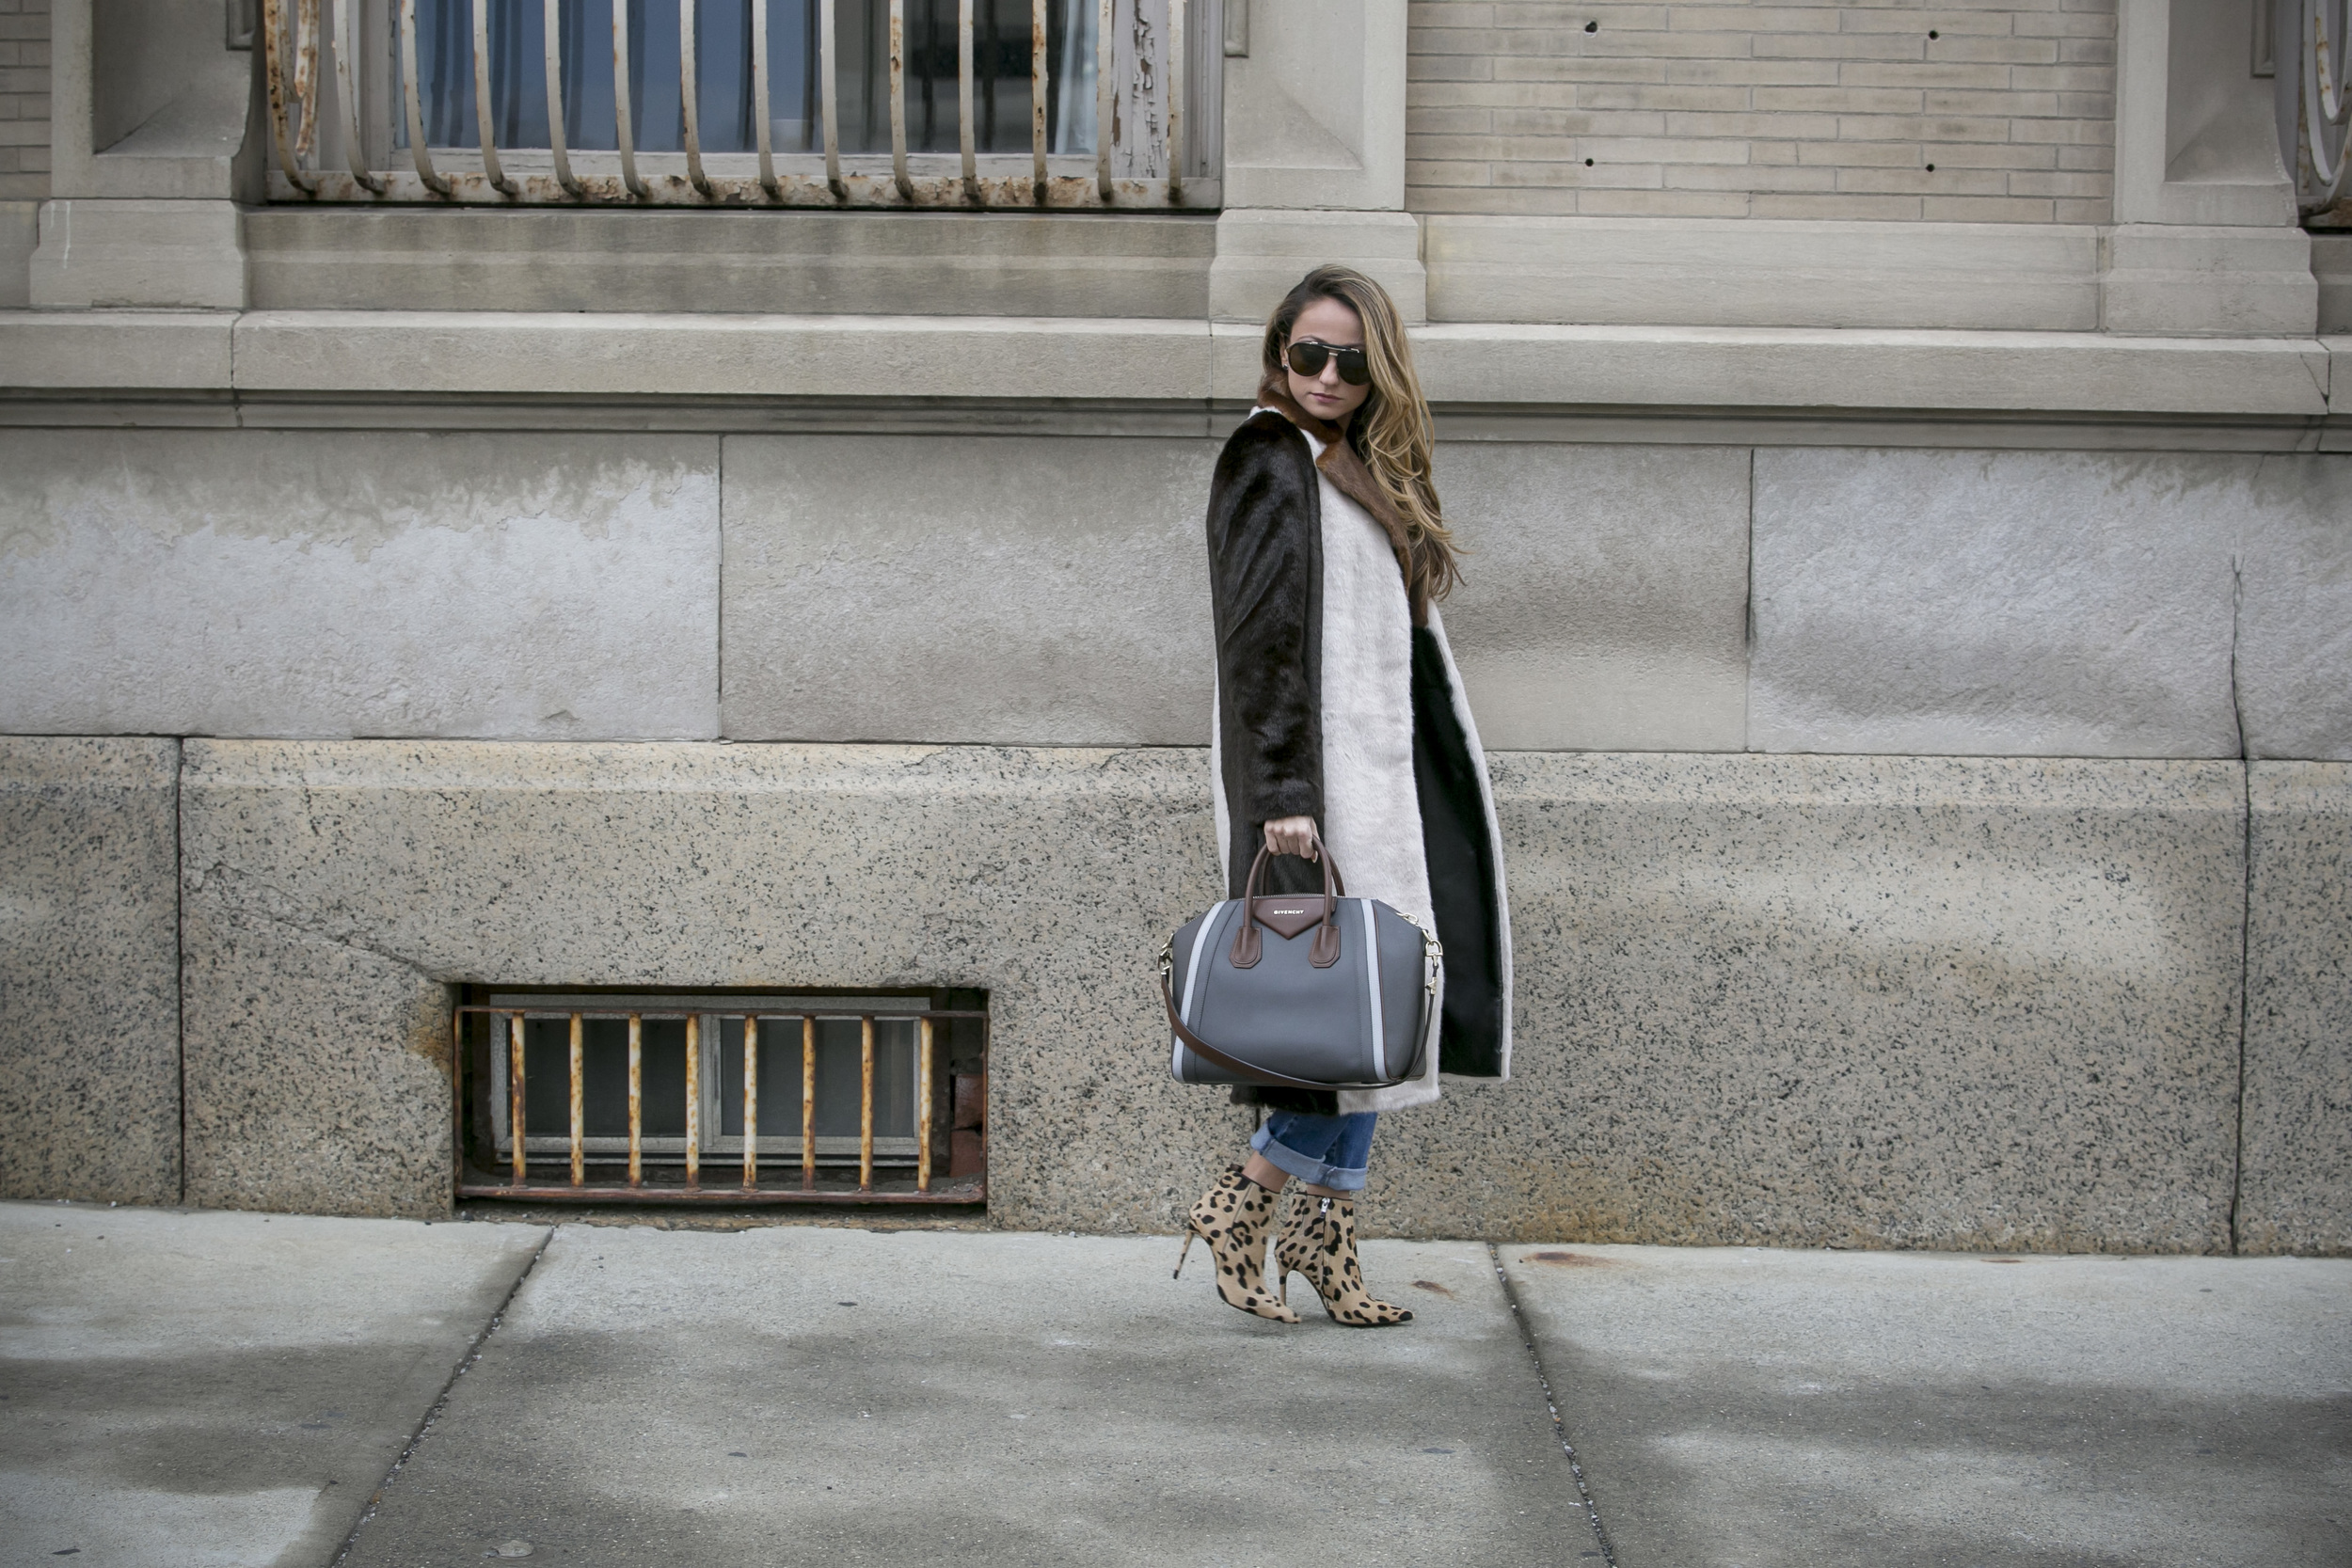 nyc streetstyle by Lauren Recchia www.northofmanhattan.com wearing Edun, Givenchy, Barbara Bui